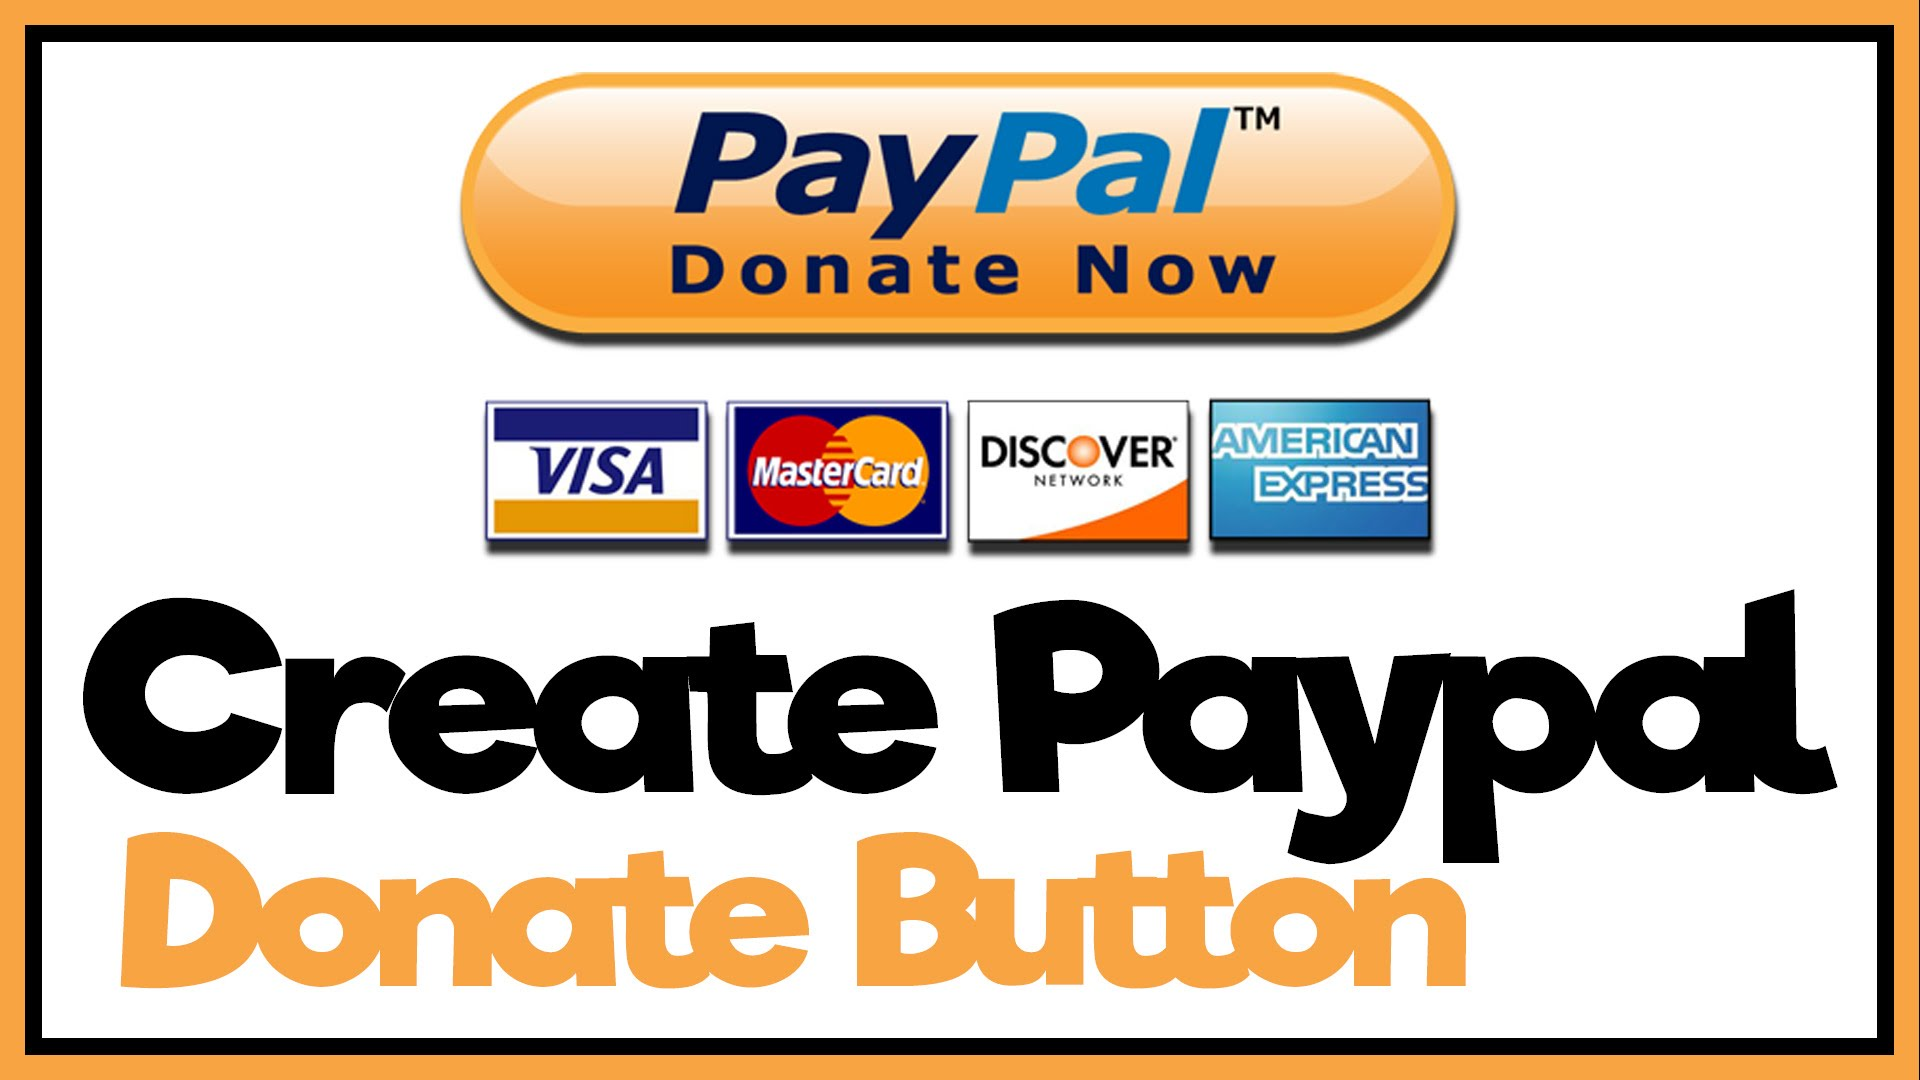 How To Make A Paypal Donate Button - Paypal Tutorial - YouTube